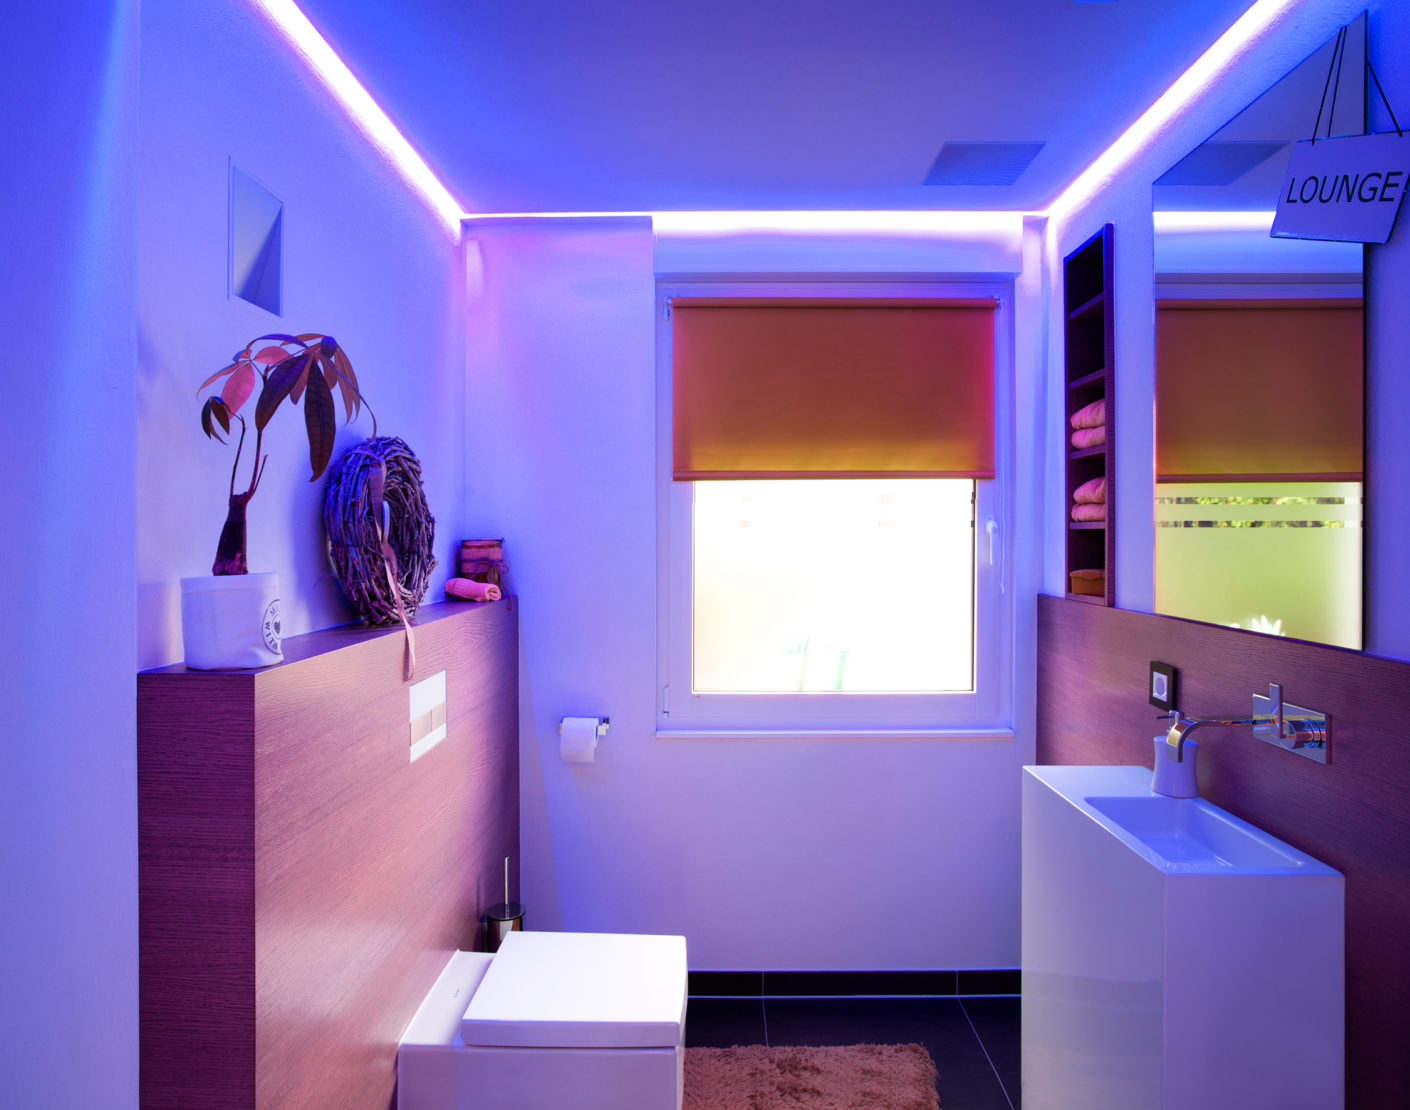 To top it all, the developers had colored LED luminaires installed in the bathroom, for example, so that the light mood can be changed there.